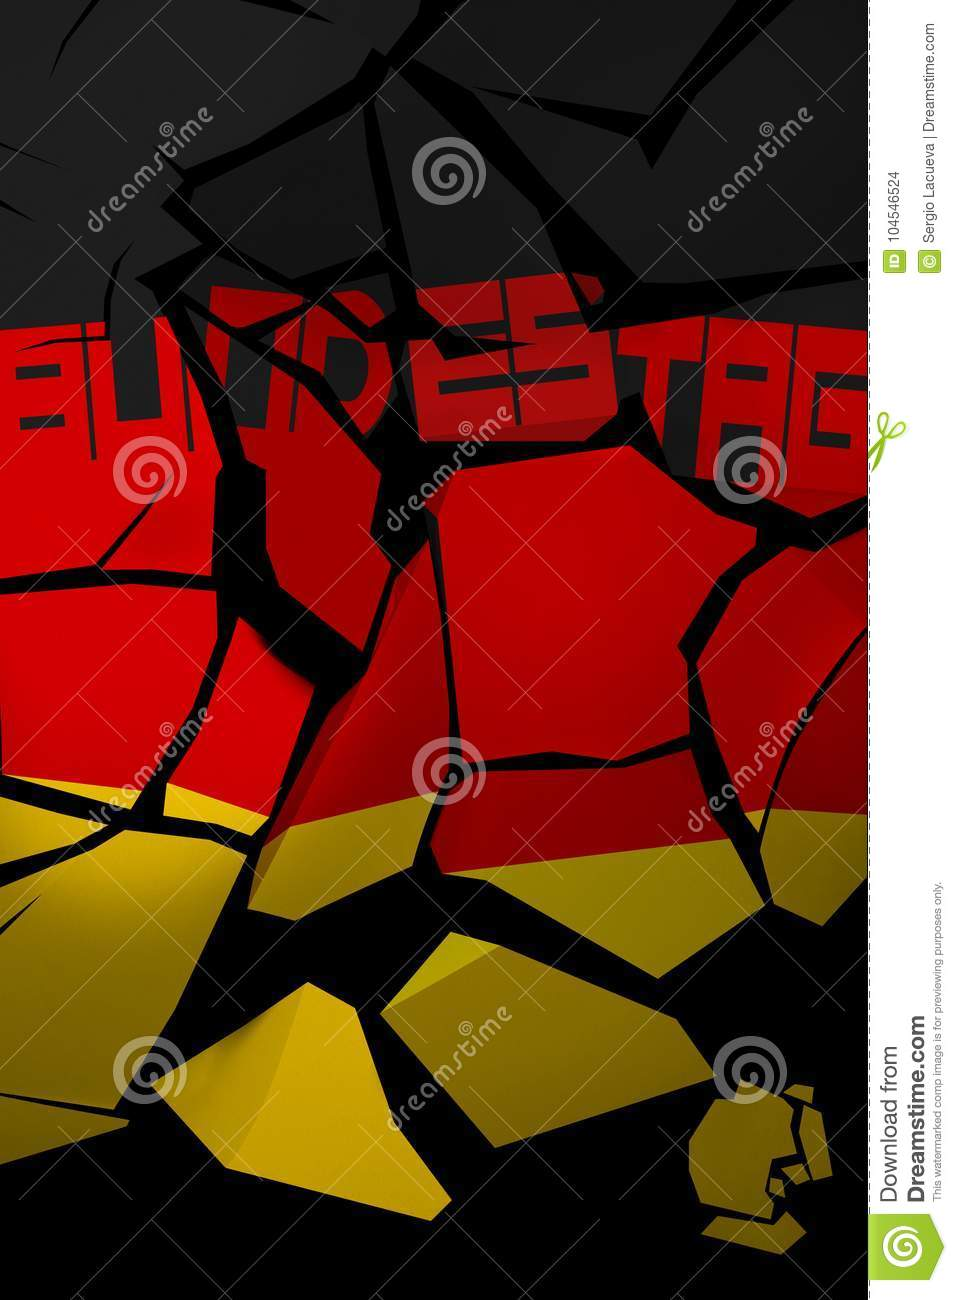 3D Illustration of a shattered Germany flag with the German word for Parliament.